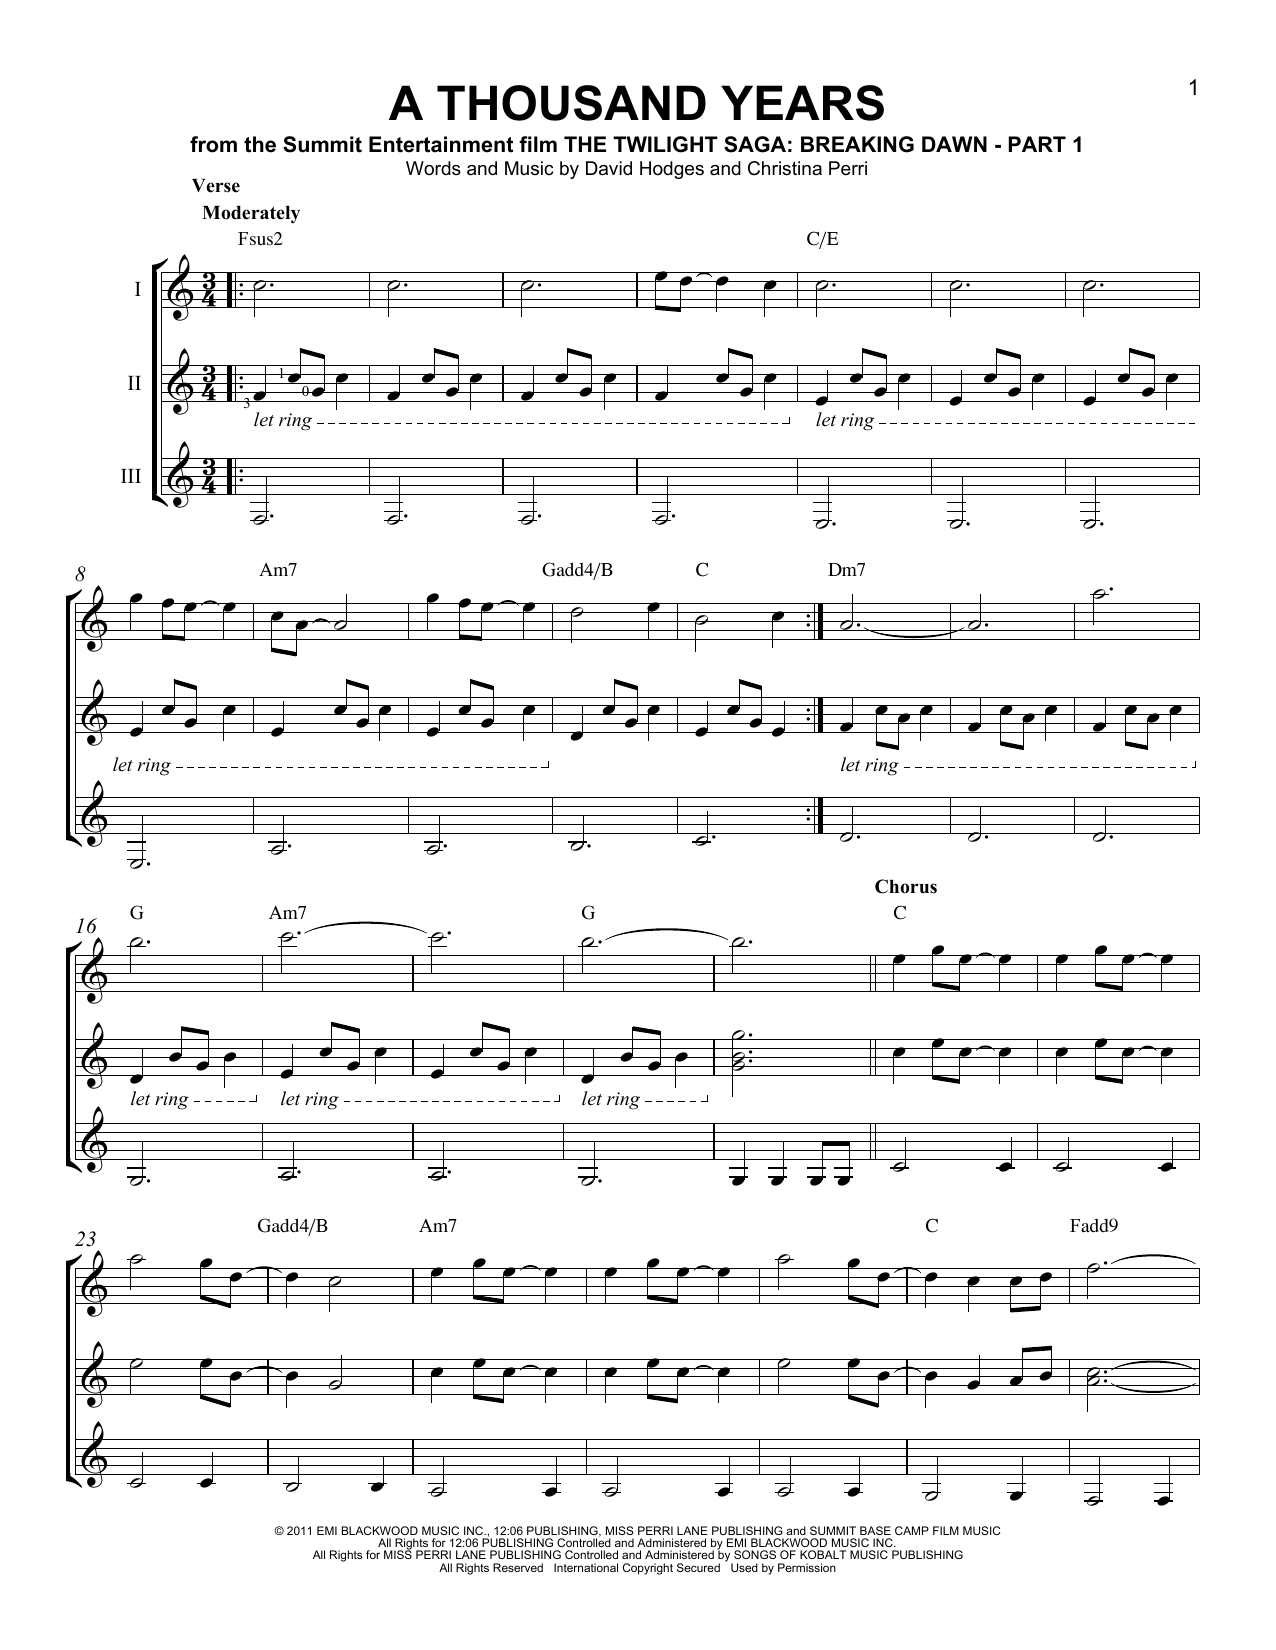 A Thousand Years Chords Christina Perri A Thousand Years Sheet Music Notes Chords Download Printable Guitar Ensemble Sku 165629